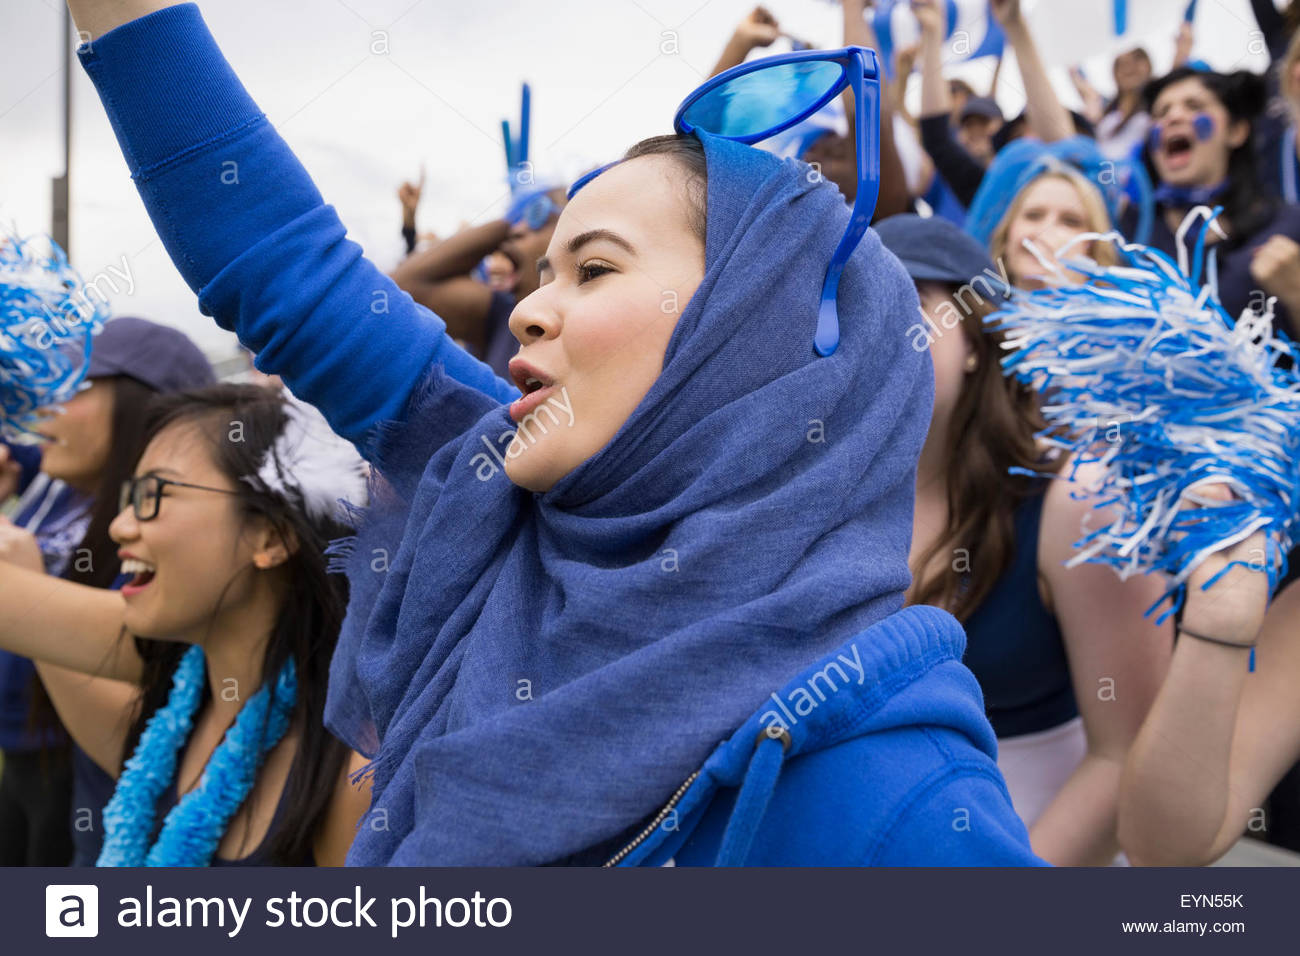 Woman in blue hijab cheering at sports event - Stock Image